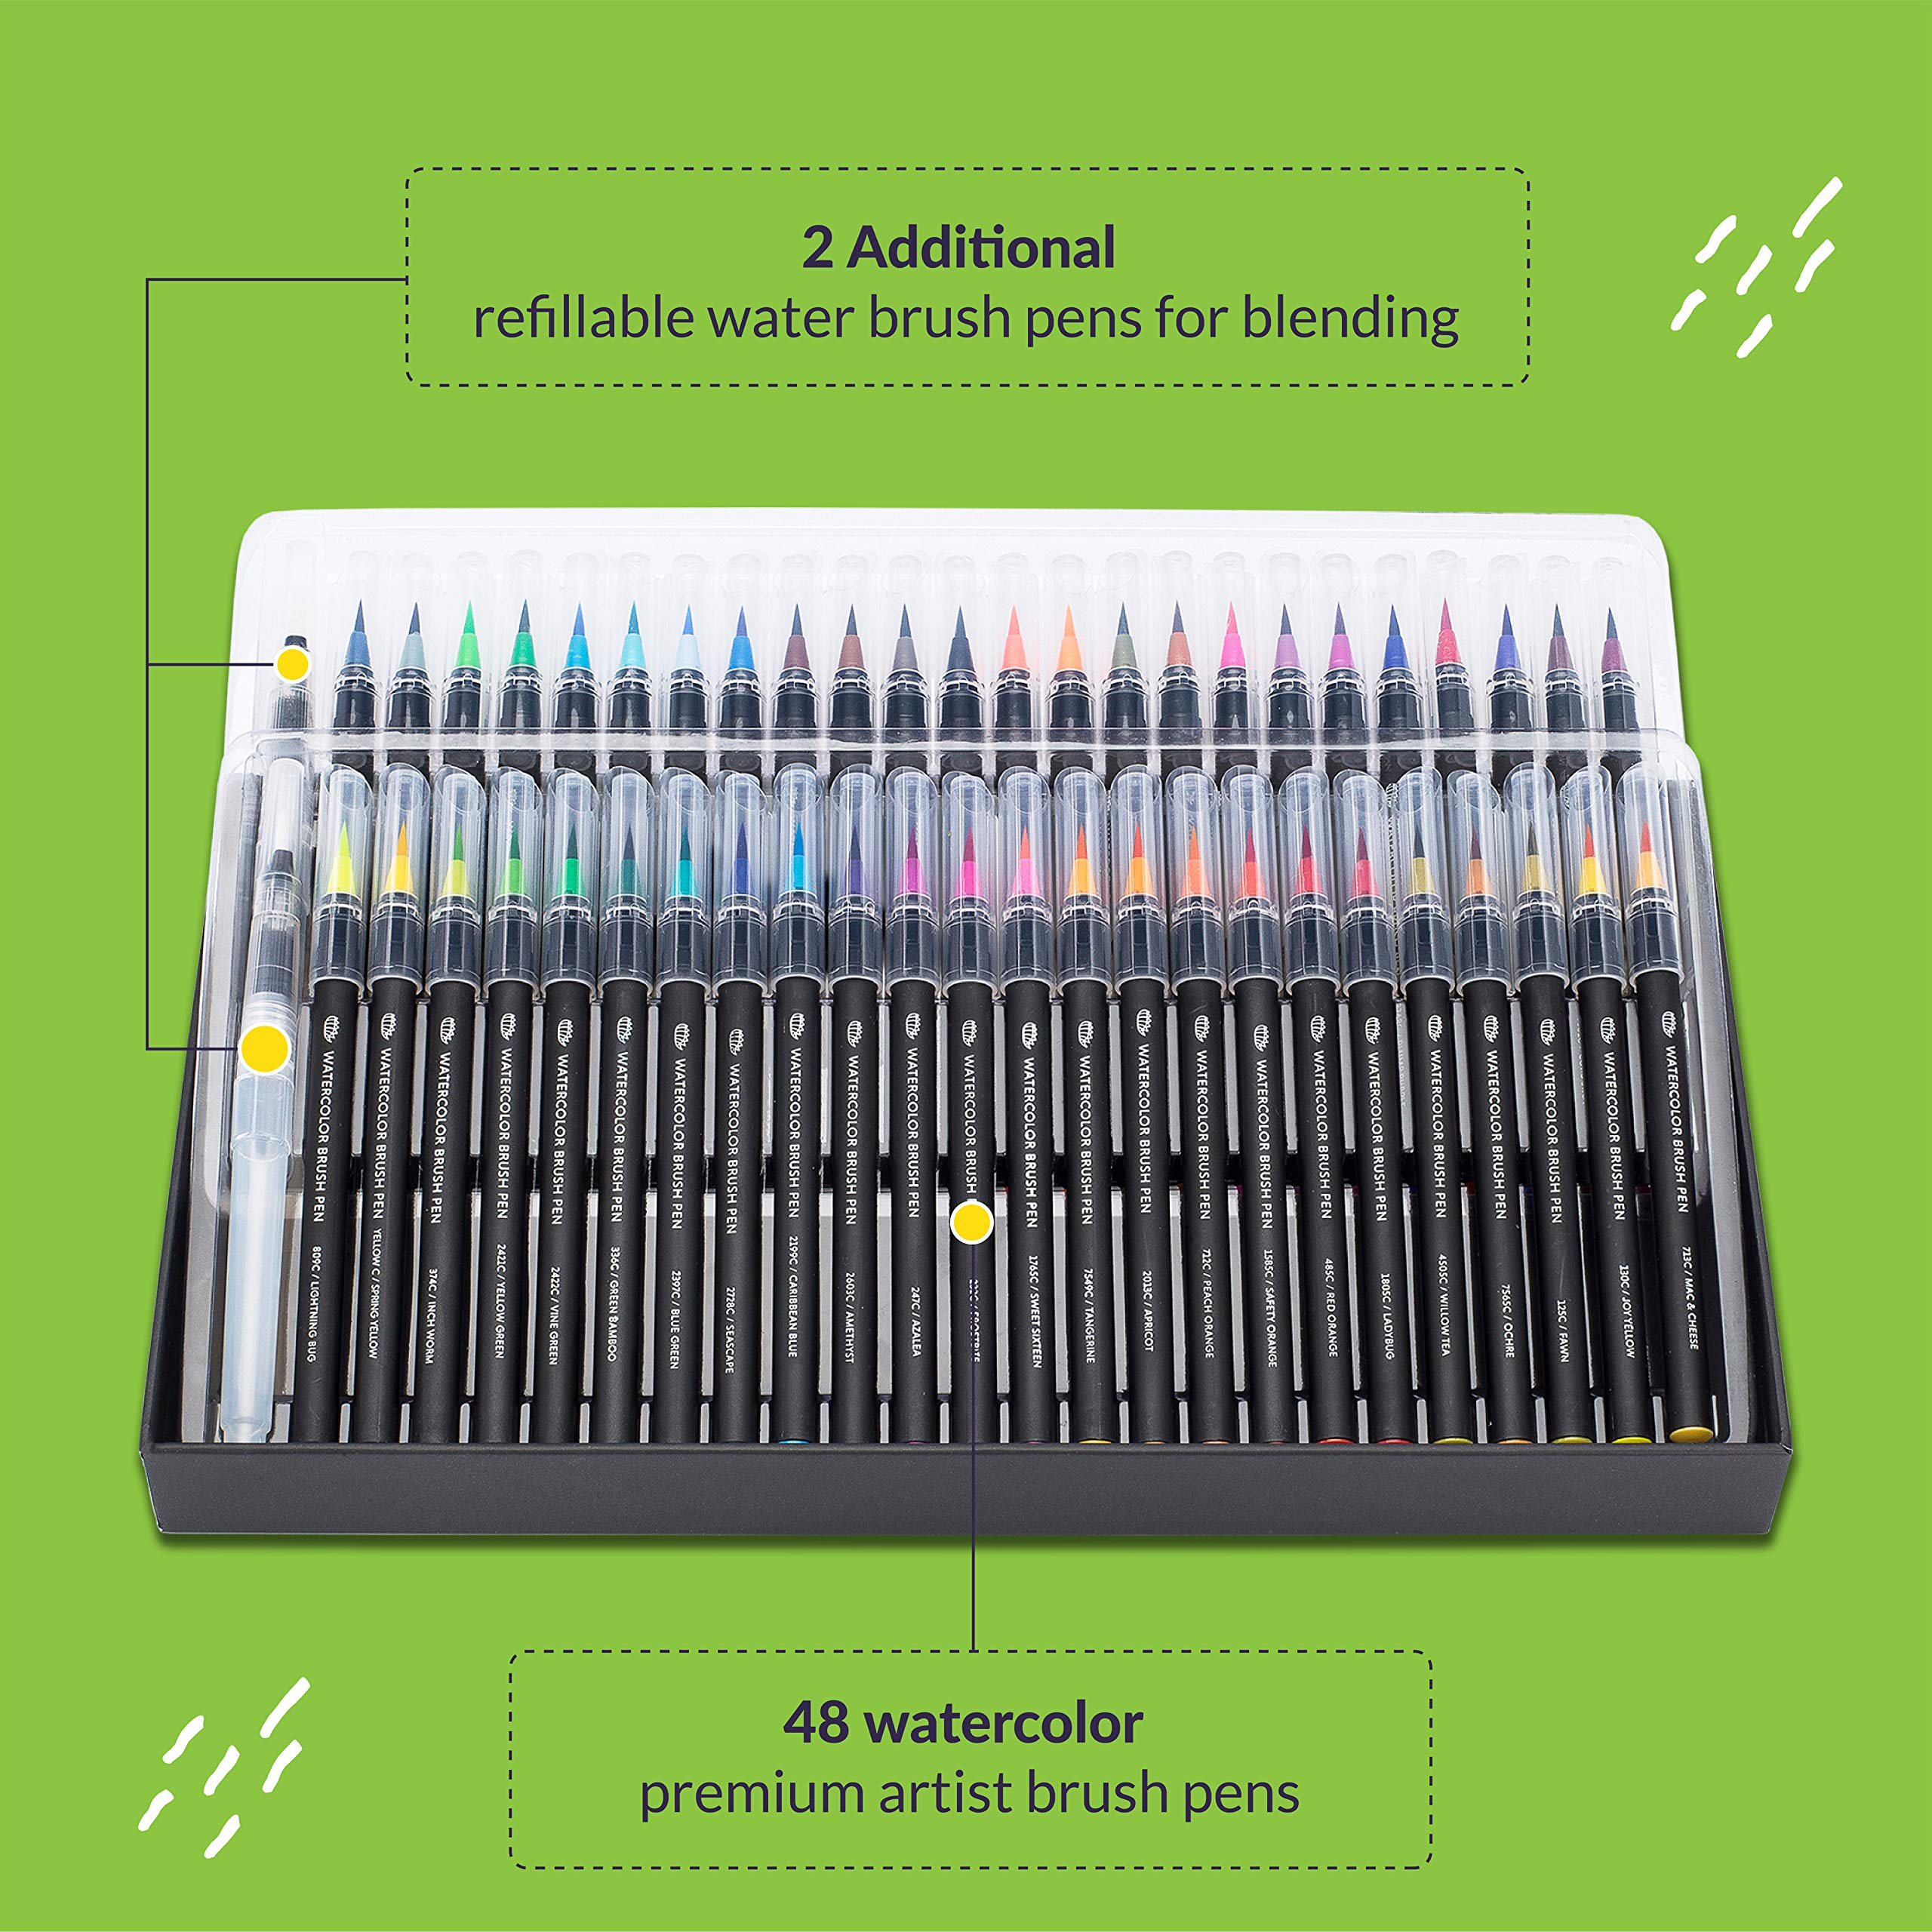 Gift Box, 48 Premium Watercolor Brush Pens, Highly Blend-Able, No Streaks, Water Color Markers, Unbelievable Value, Water Brush Pens For Beginner To Professional Artist by Dab and Dot Markers (Image #3)